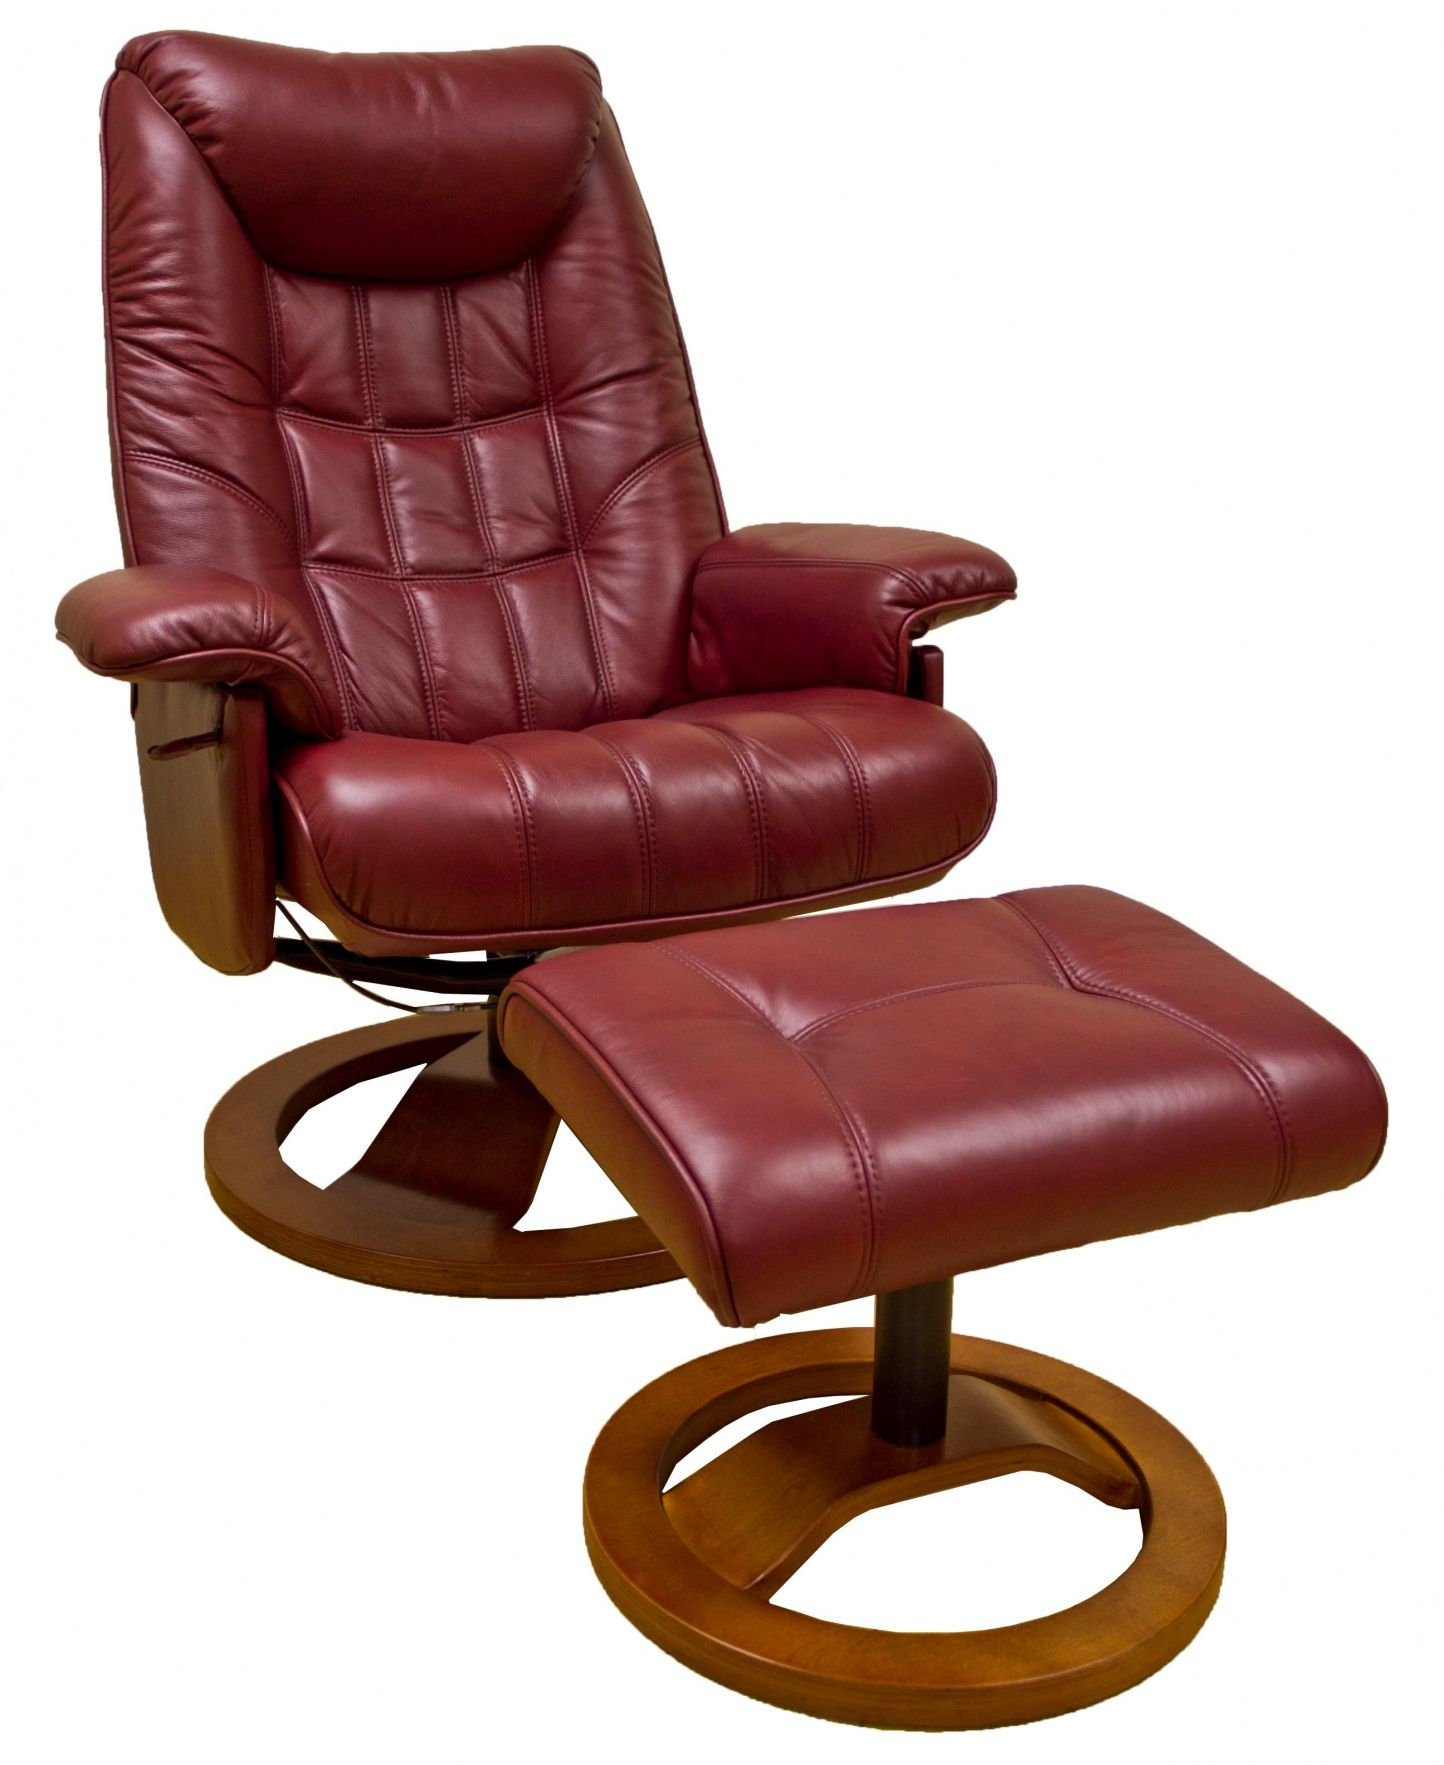 Merveilleux 70+ Leather Spinning Chair   Cool Storage Furniture Check More At Http://